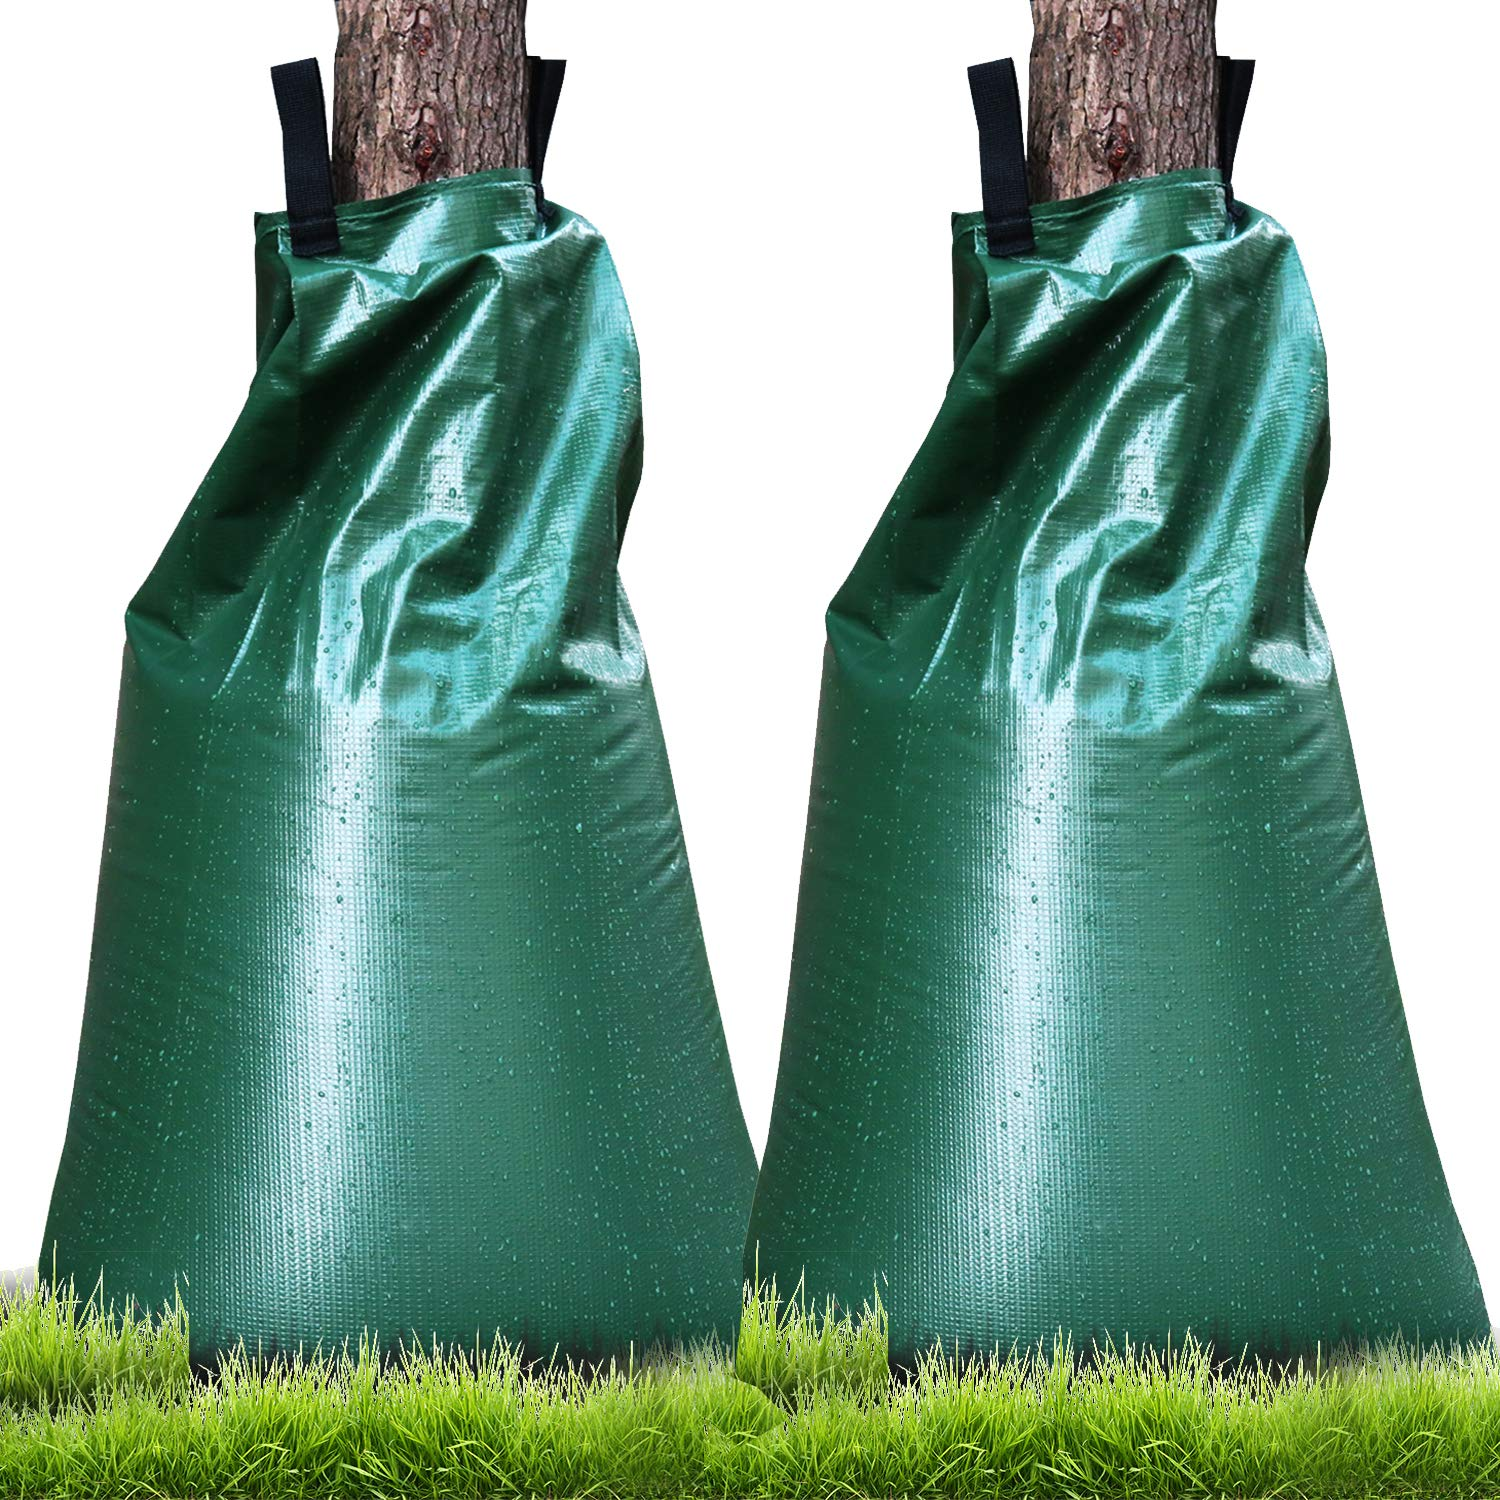 Premium Tree Watering Bag, UPGRADED 20 Gallon Slow Release Plant Watering Bag for Tree Dip Irregation, Made of Upgrade Thickened PVC Tarpaulin with Heavy Duty Zipper (2 PACK)